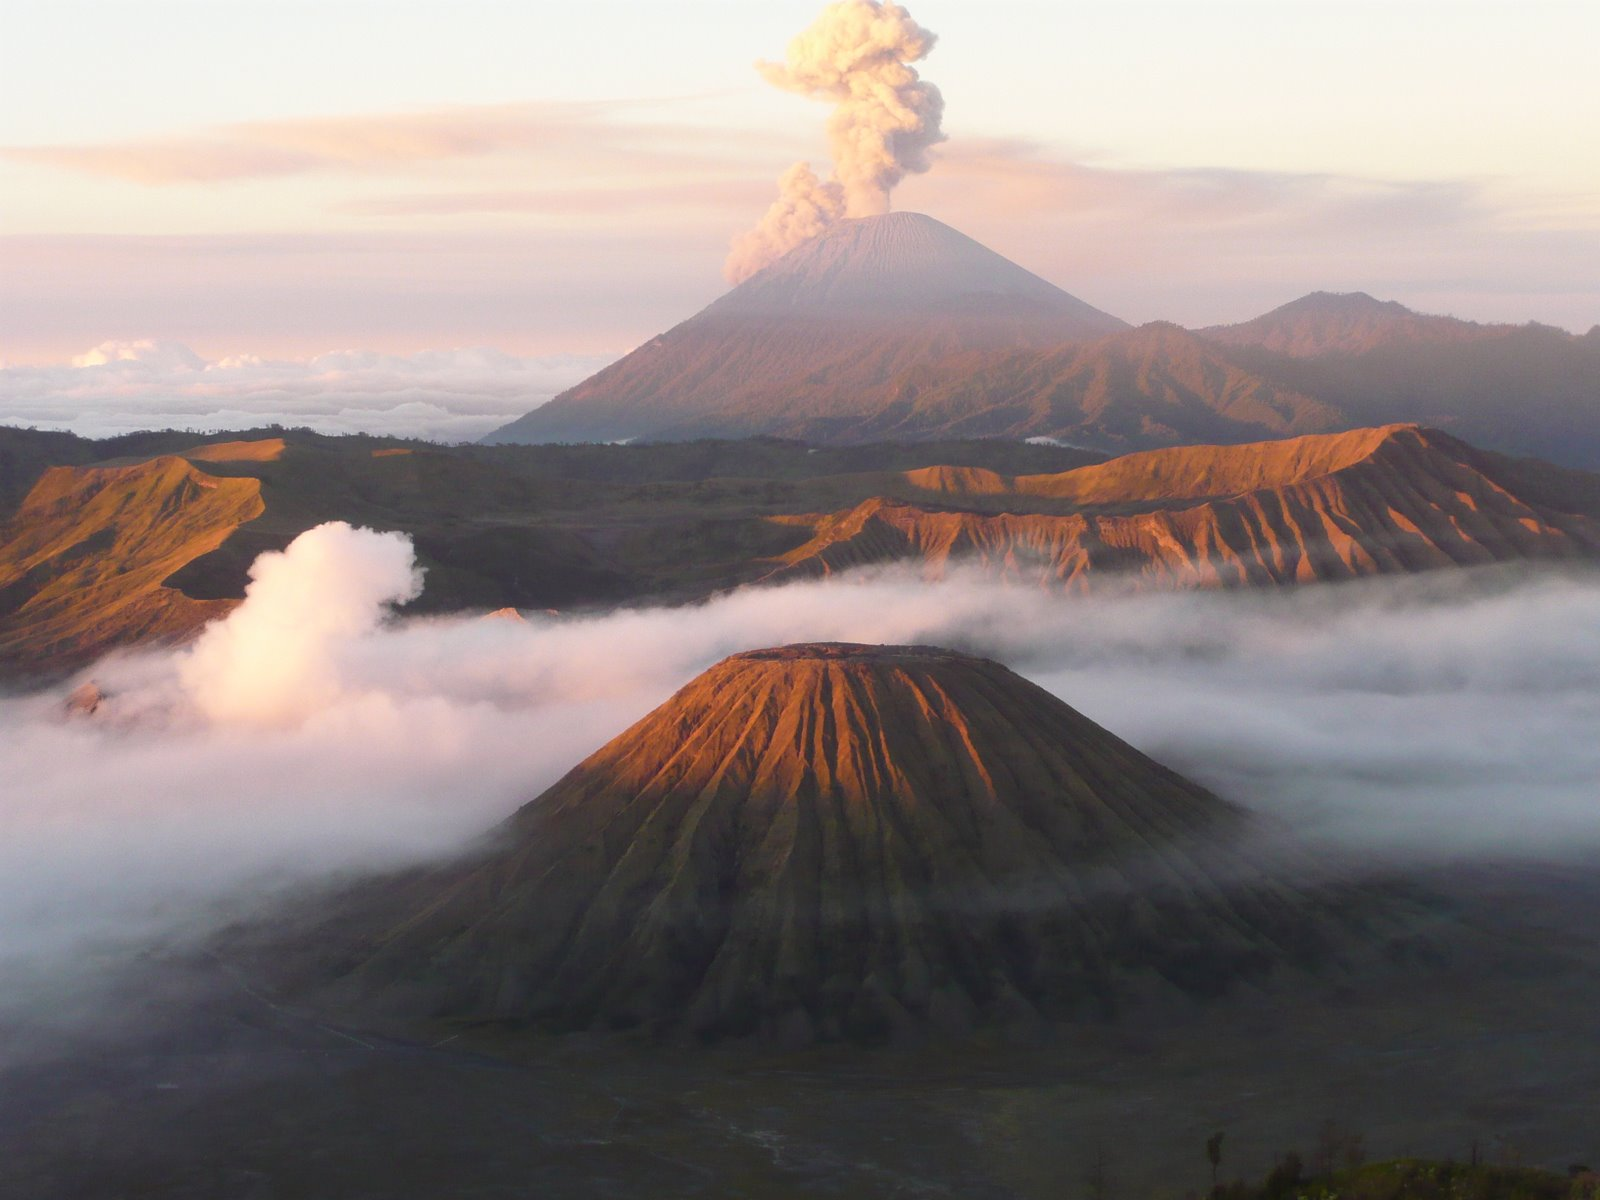 Mount Semeru smoke (Volcano) - similarity image